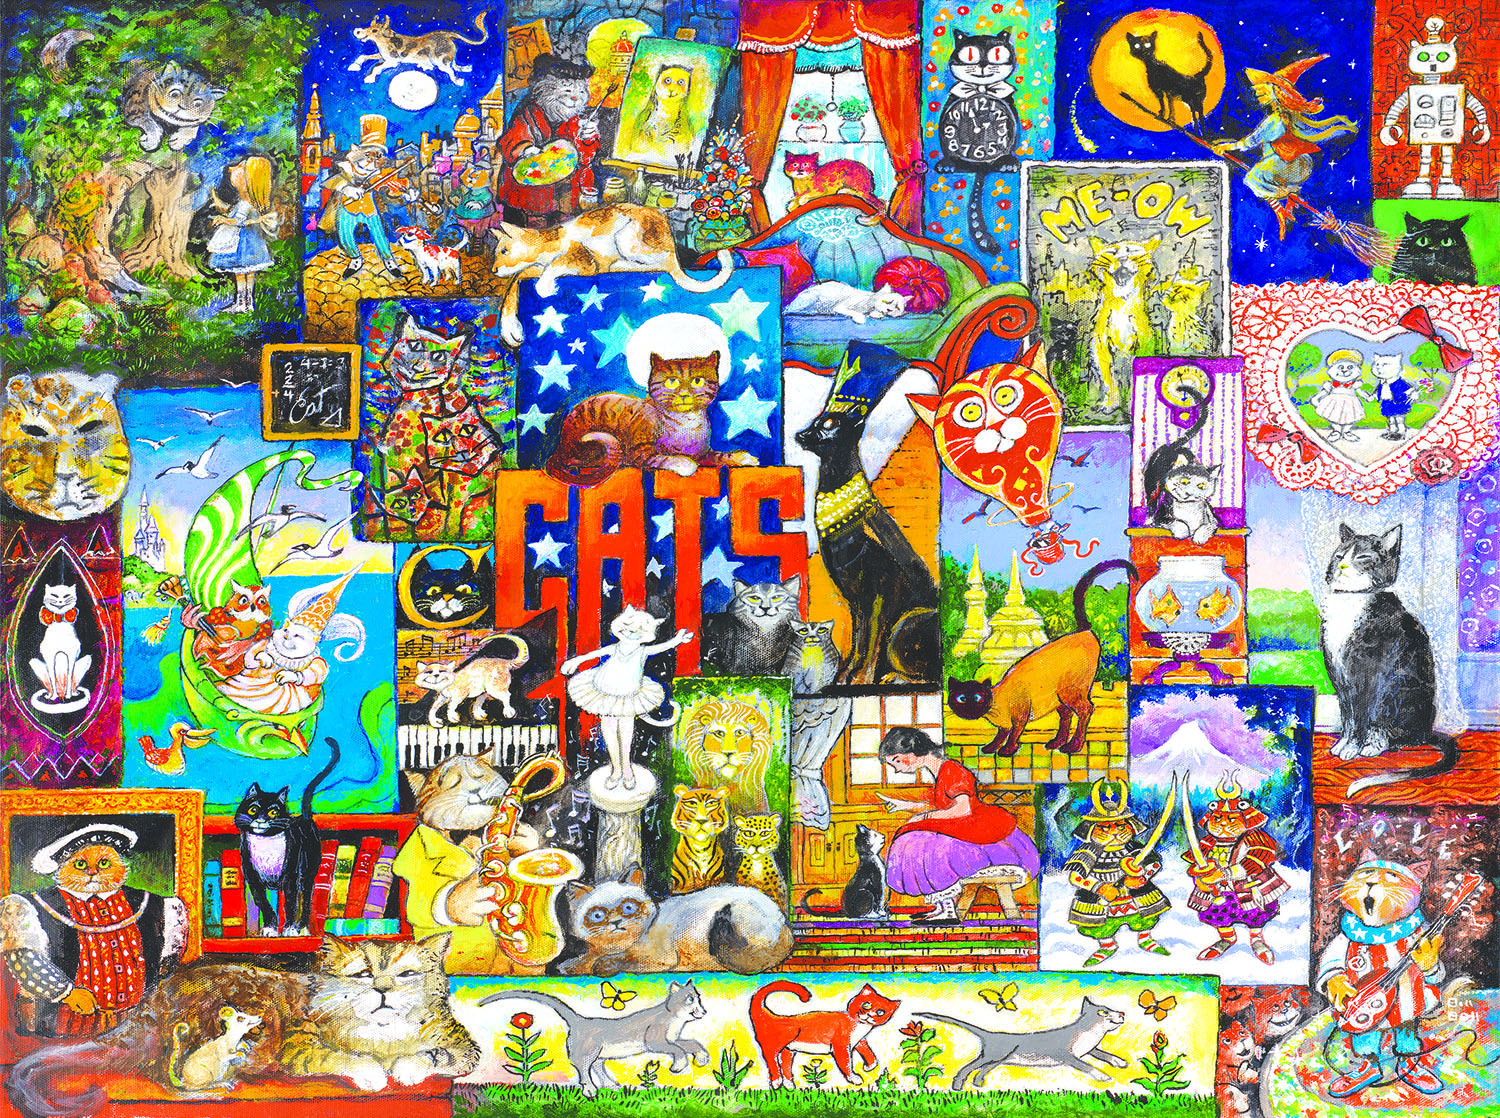 World of Cats 1000 pc Jigsaw Puzzle by SunsOut